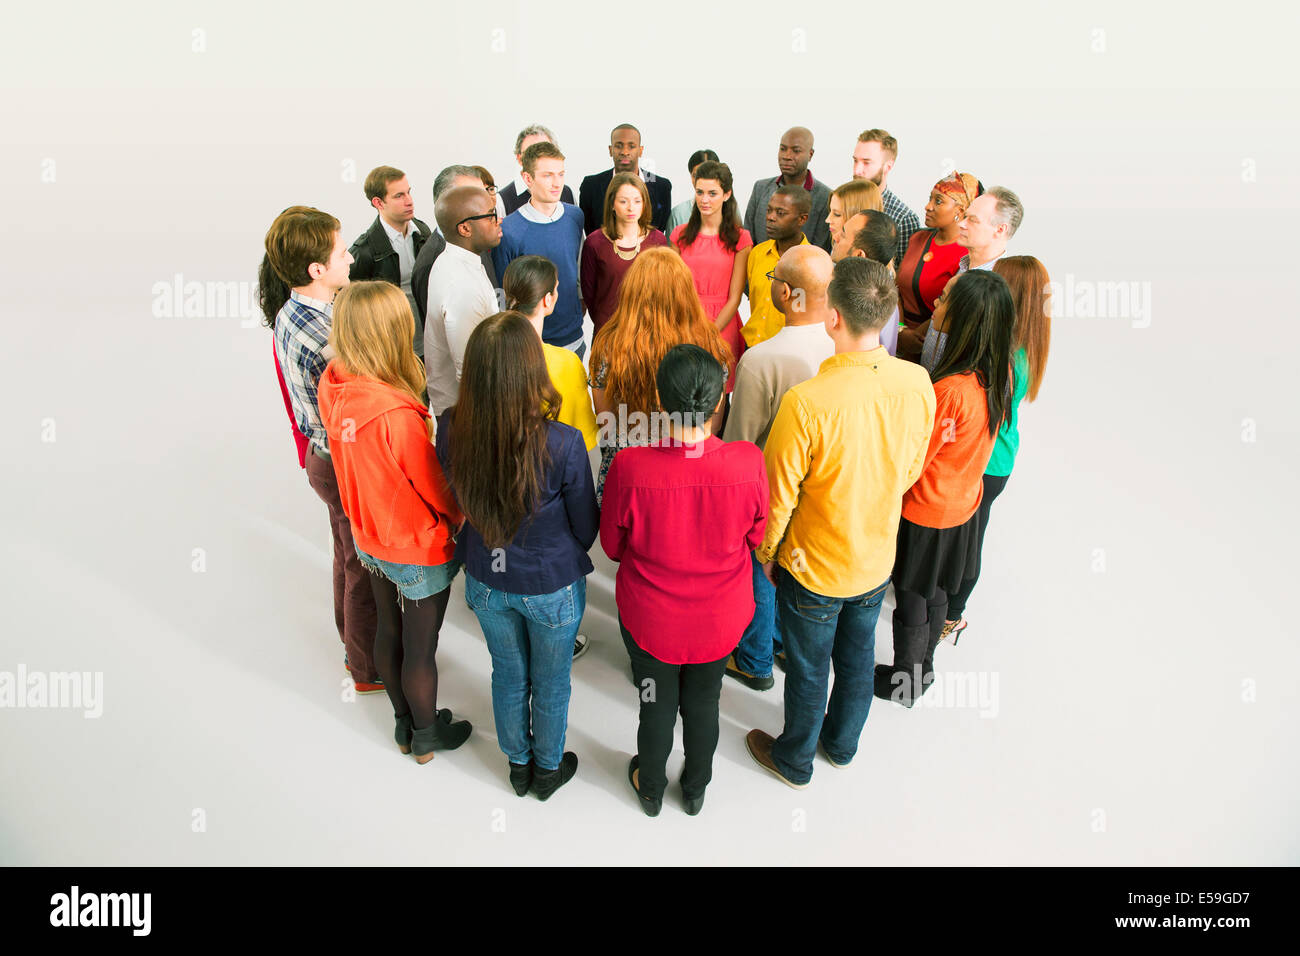 Diverse group in circle - Stock Image